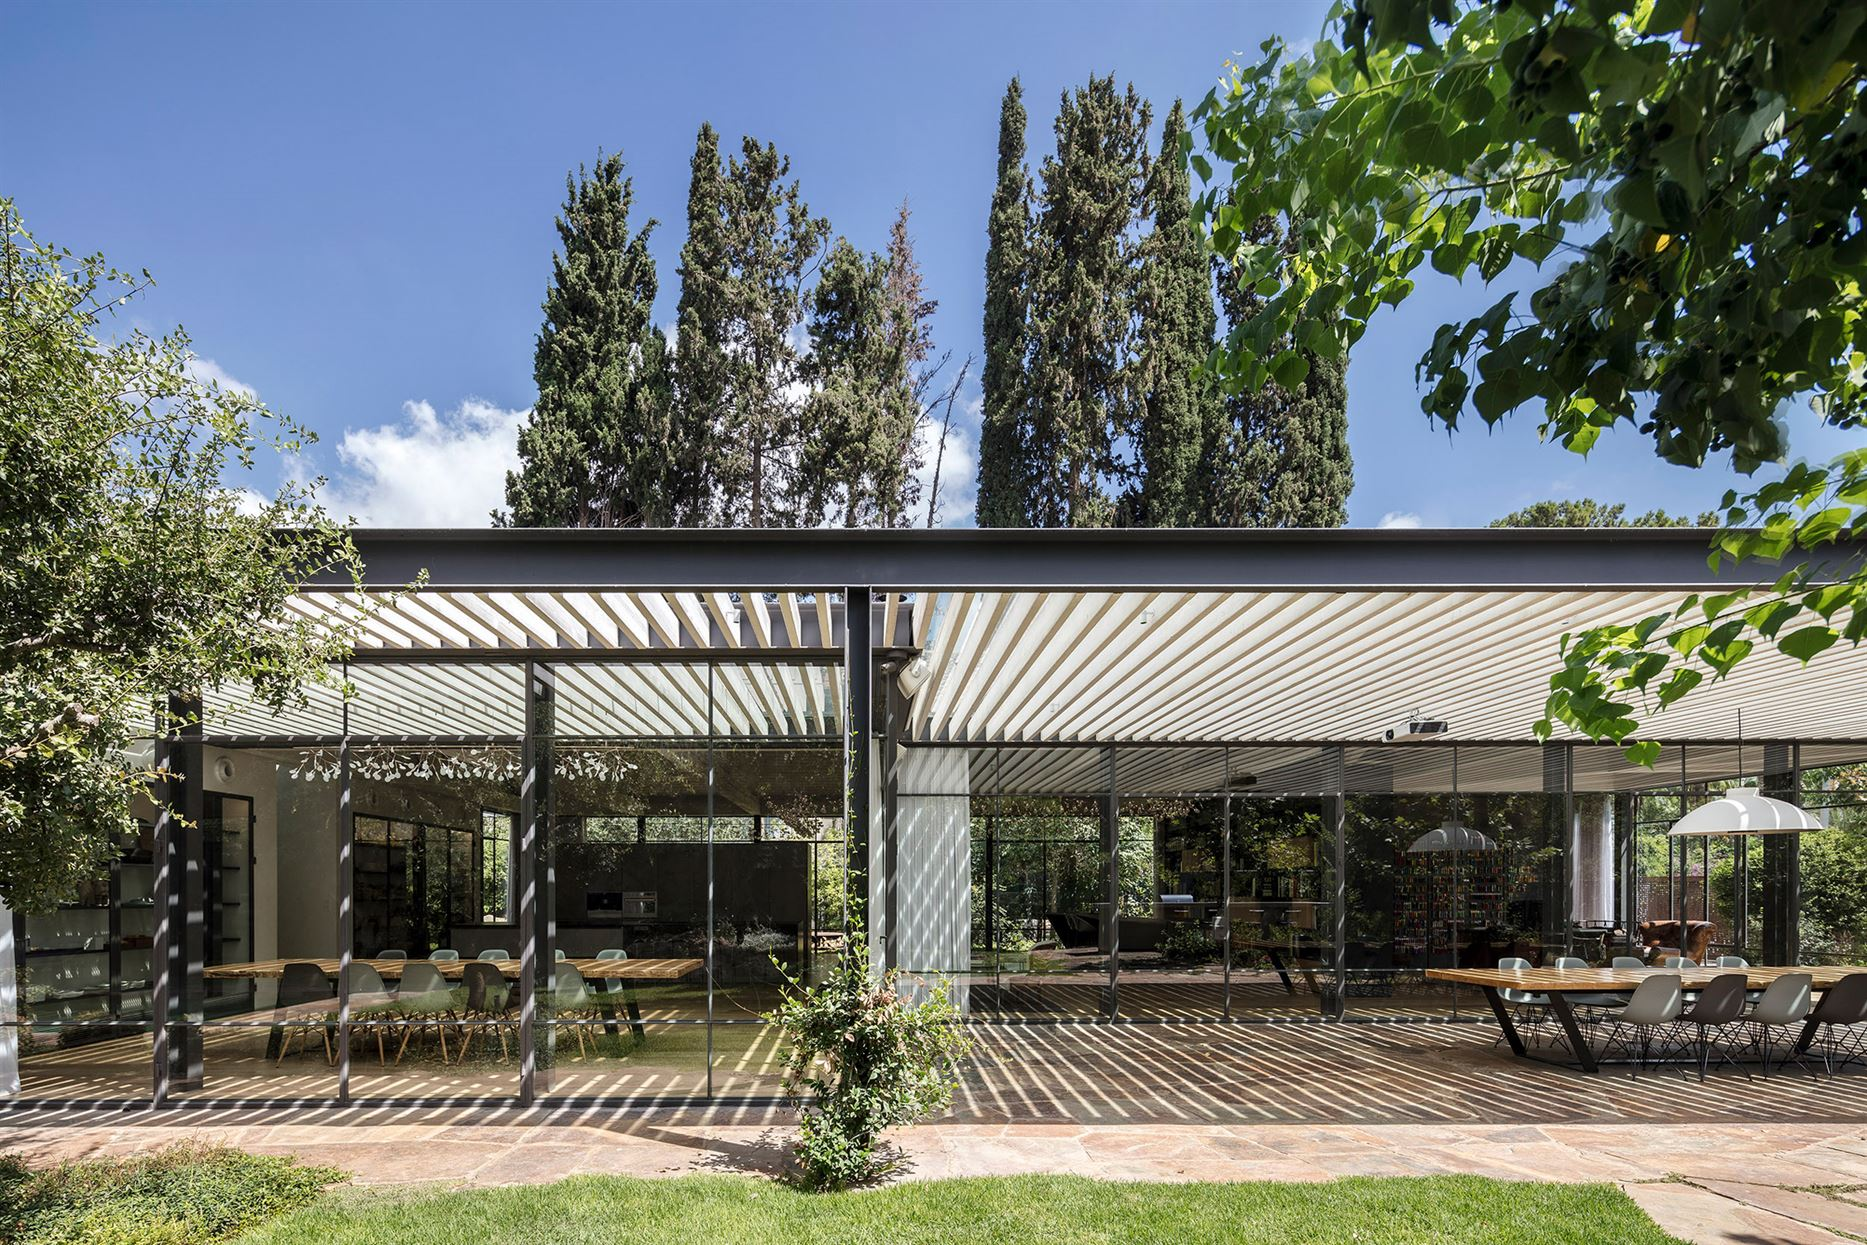 m-house-pitsou-kedem-architecture-residential-israel_dezeen_2364_col_3 (1)